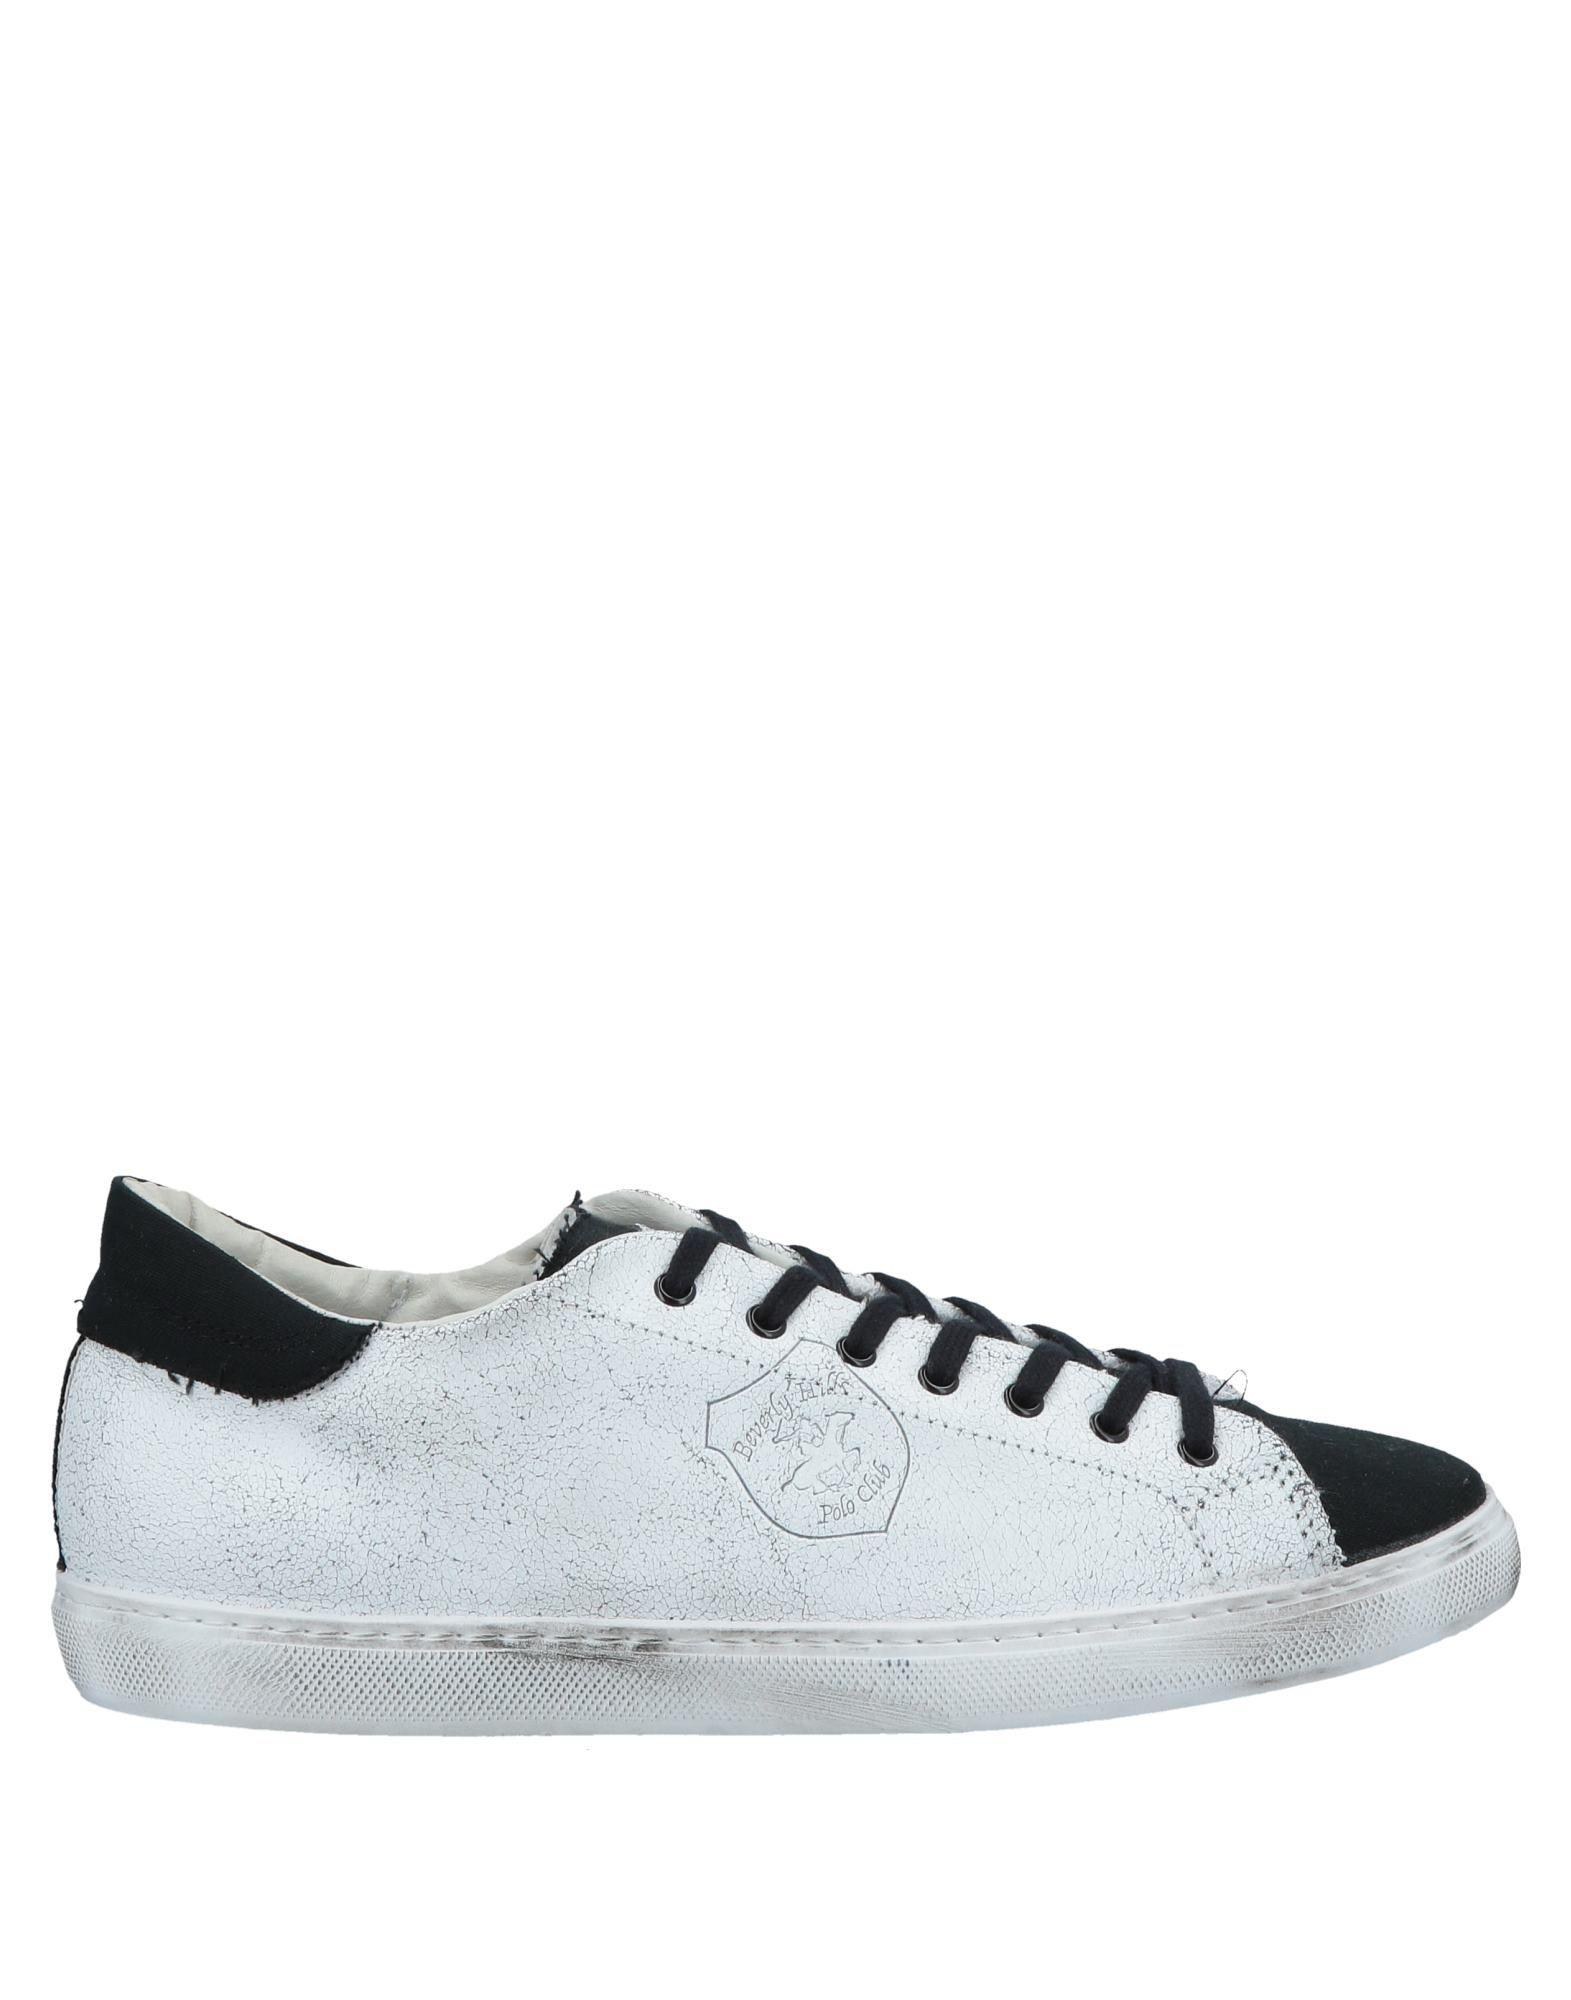 ca3da48d910 beverly-hills-polo-club-White-Low-tops-Sneakers.jpeg